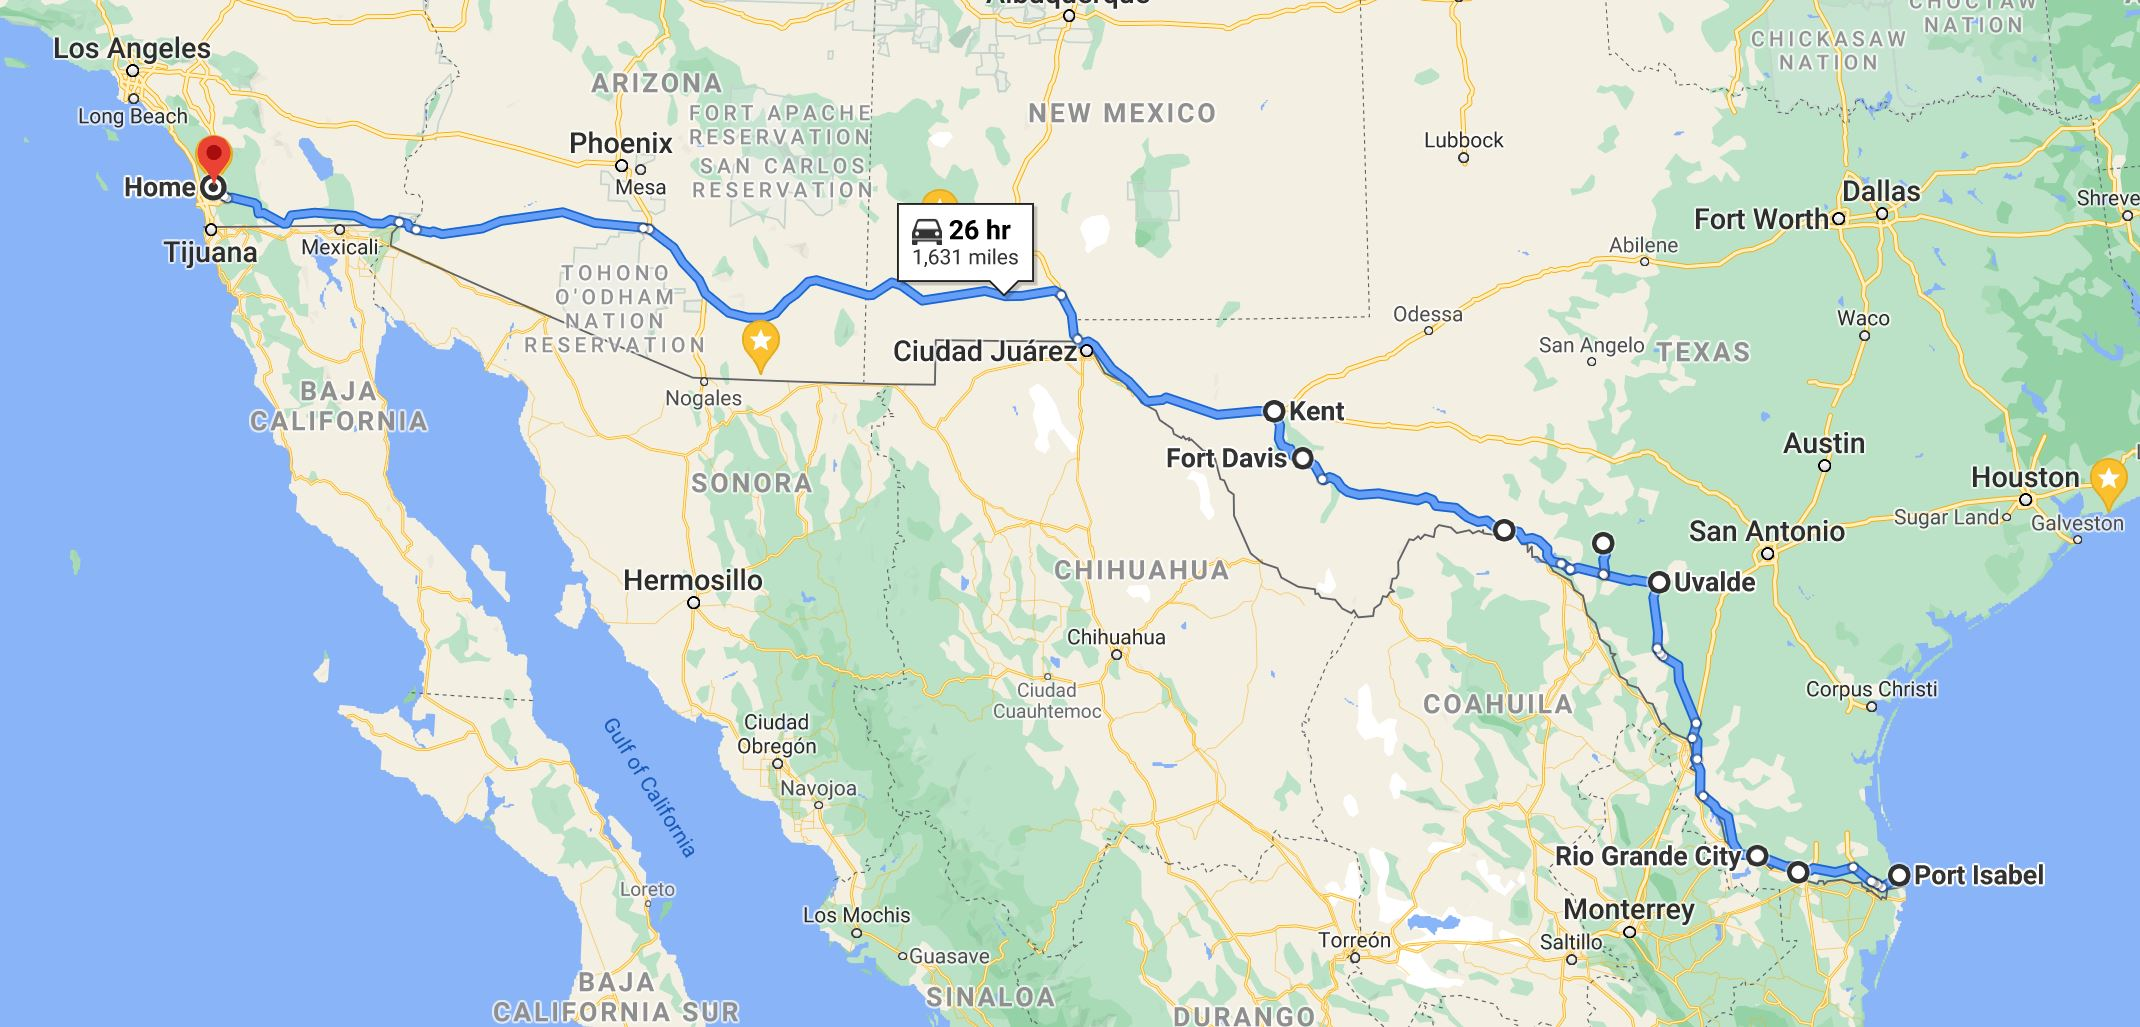 Map - Texas to Poway